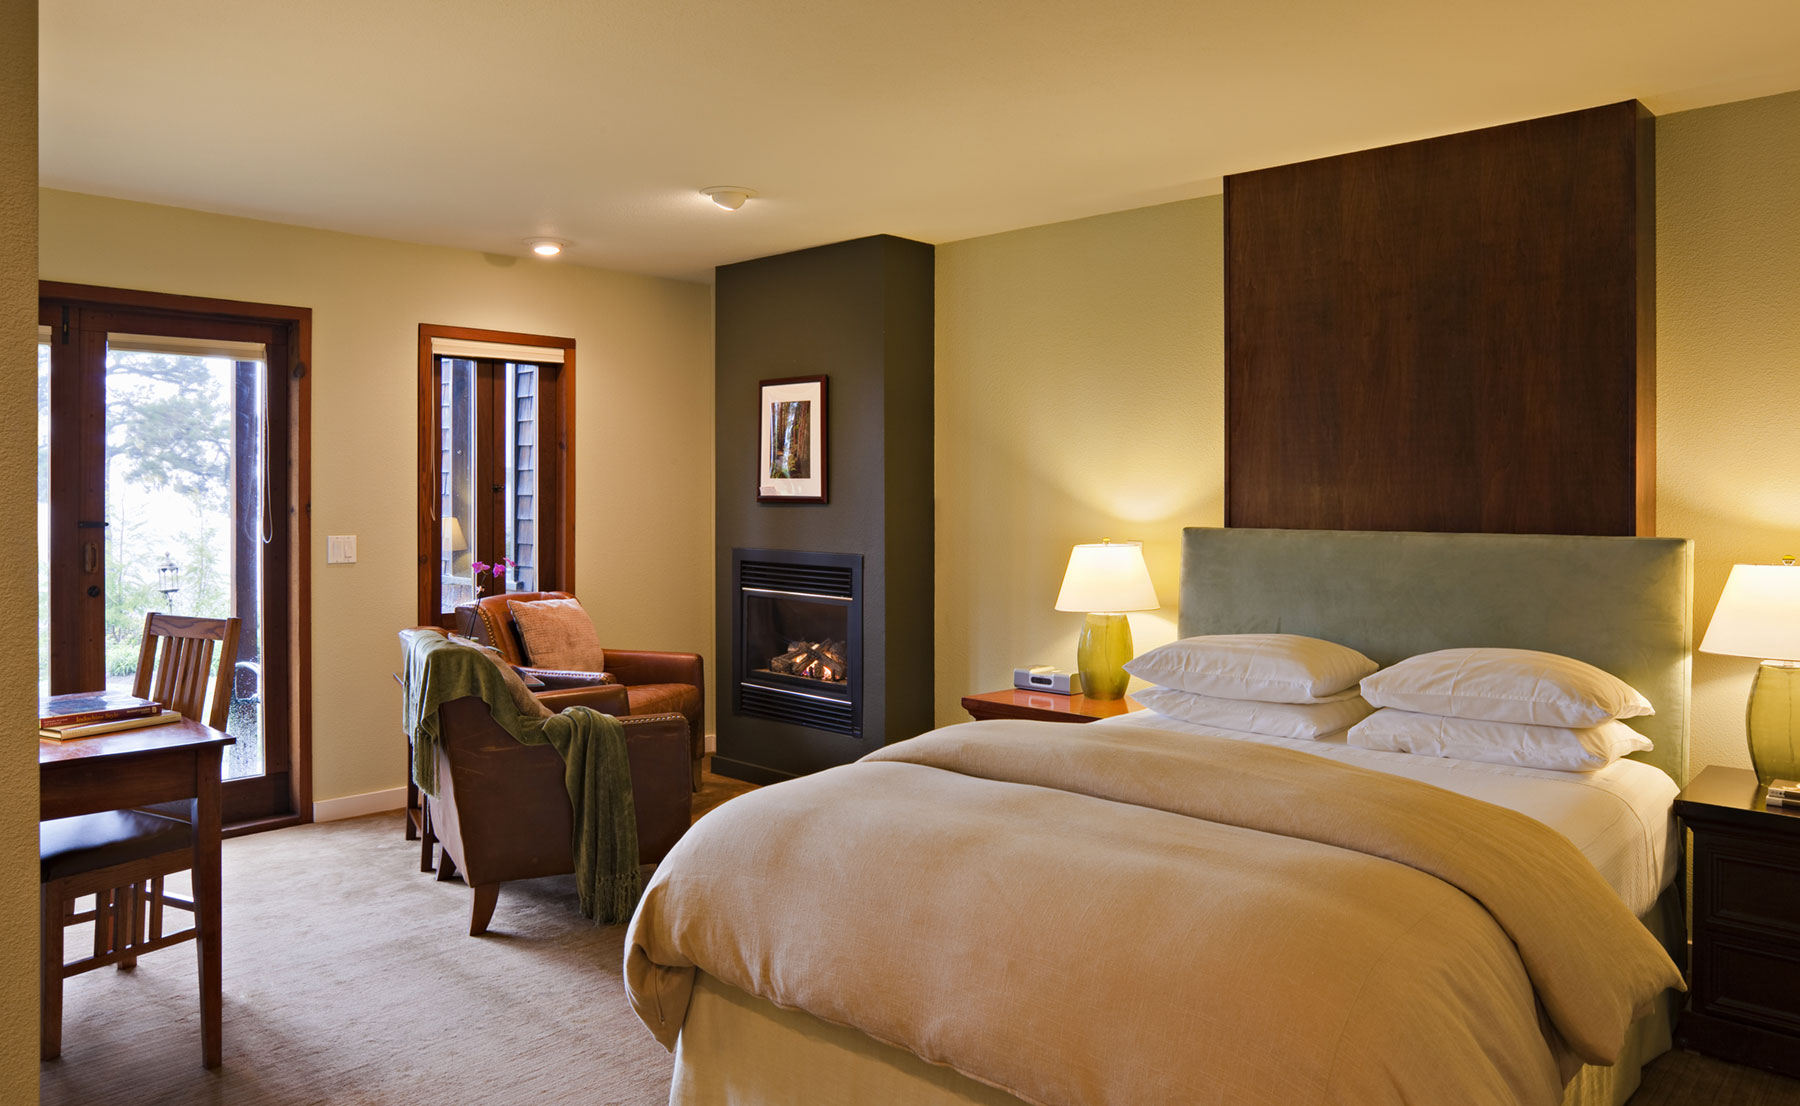 The ADA Accessible Redwood room with Queen bed, desk, French doors, and leather seating around a fireplace